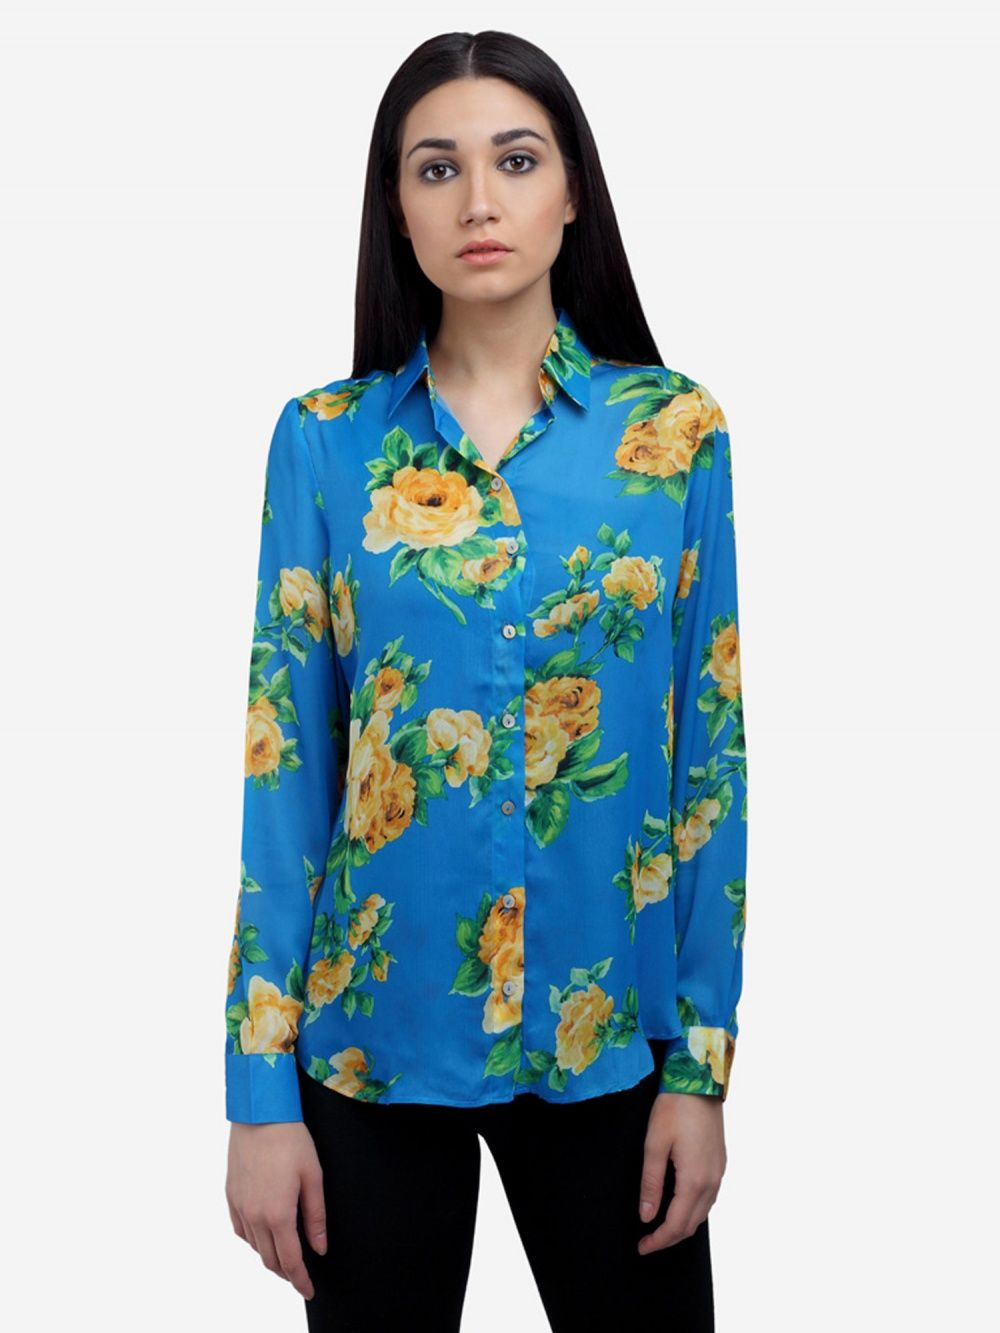 b94efc93fb378c Silk Shirts Online – EDGE Engineering and Consulting Limited